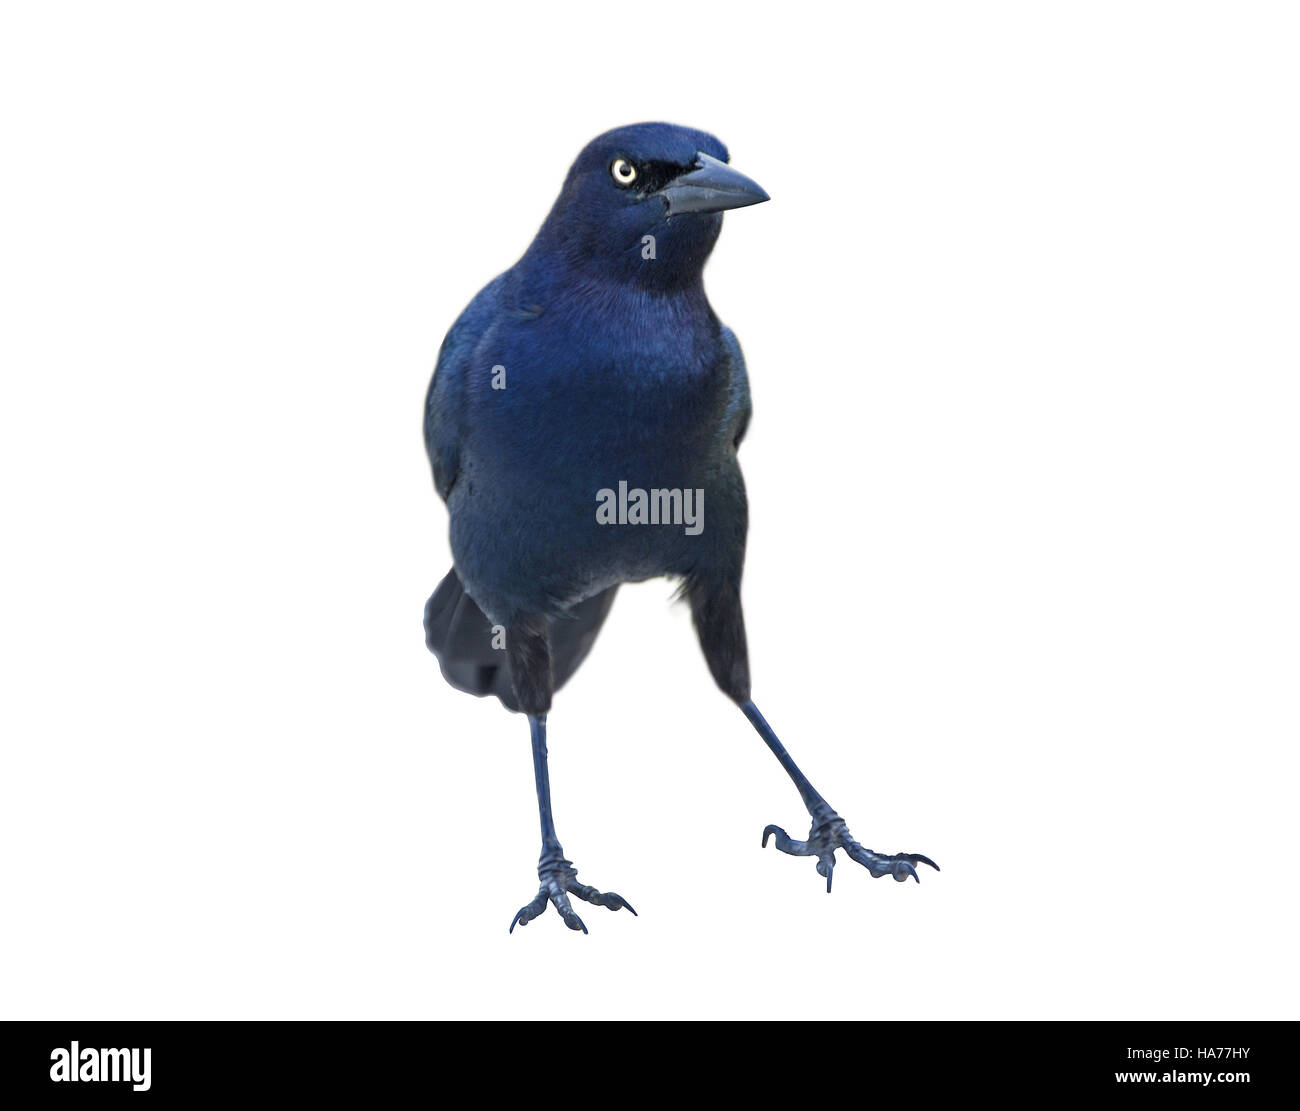 Blackbird - male Boat-tailed Grackleon(Quiscalus major) - in belligerent pose isolated on white background. - Stock Image